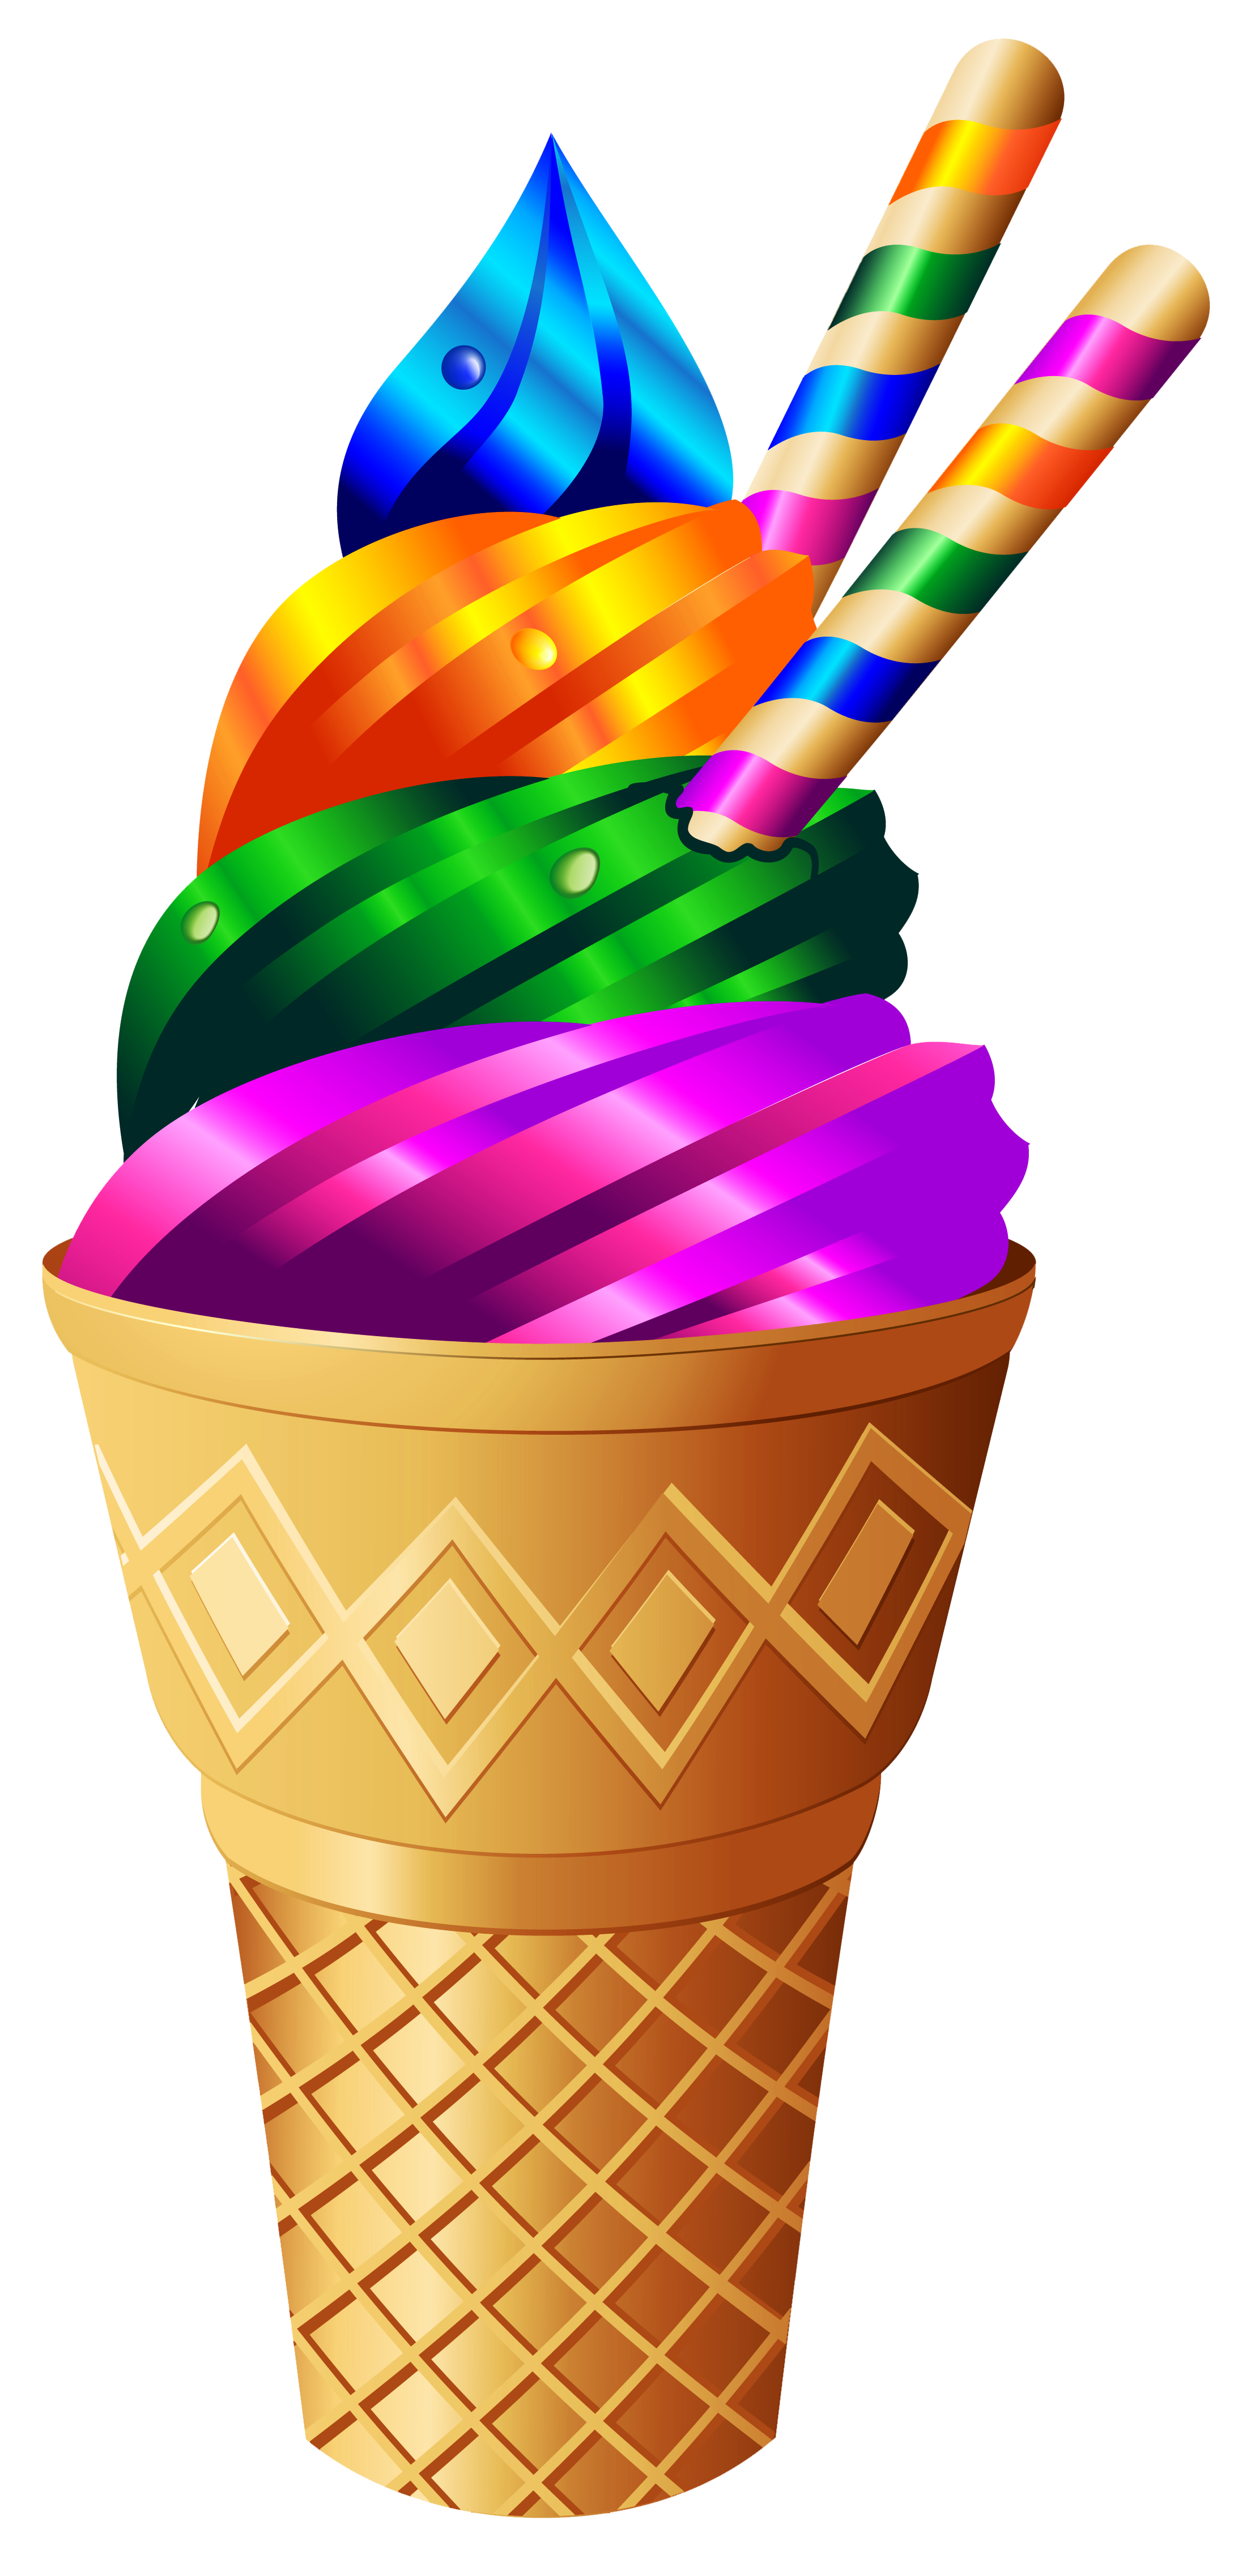 Waffle Cone clipart ice candy COMIDA PNG Transparent FRUTAS Cream